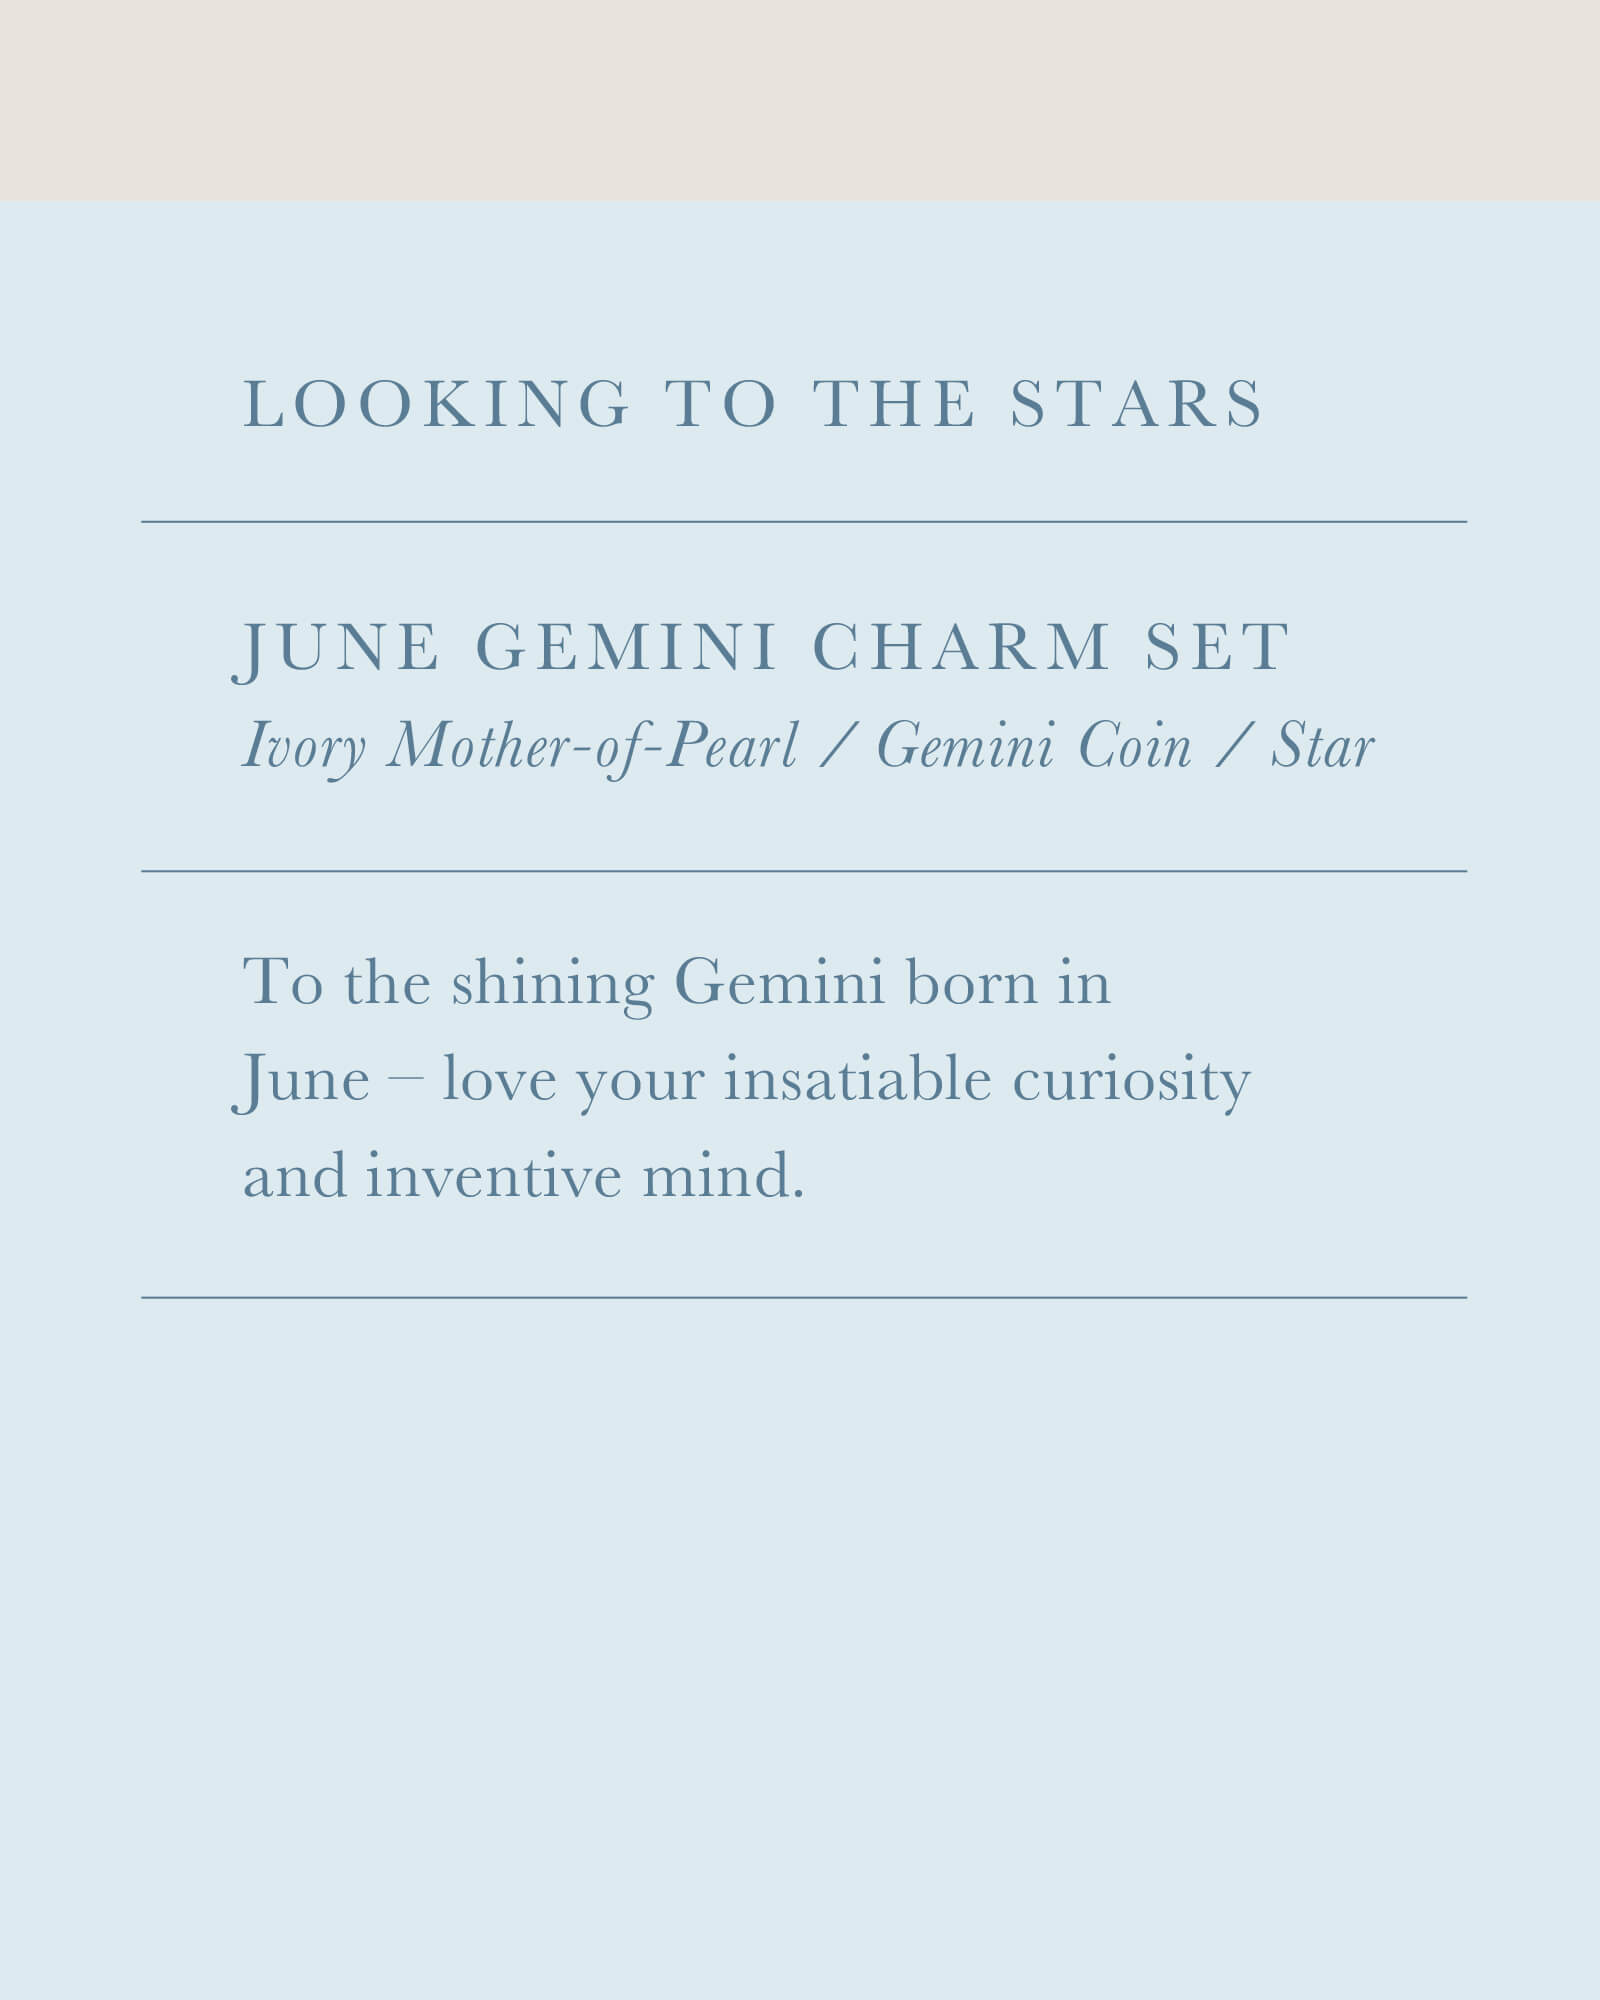 June Gemini Charm Necklace Set in Silver